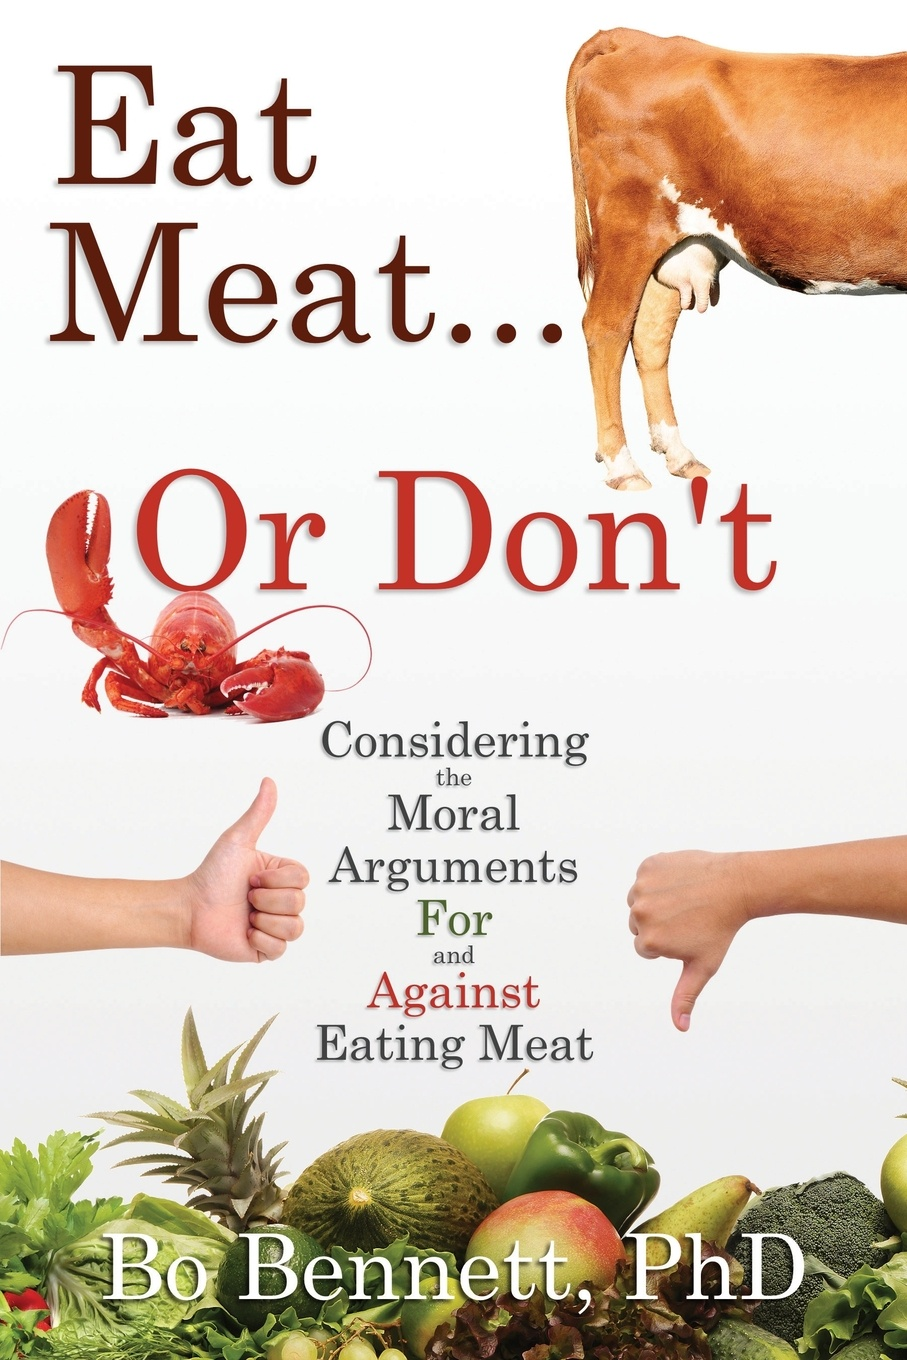 PhD Bo Bennett Eat Meat... or Don't. Considering the Moral Arguments For and Against Eating Meat